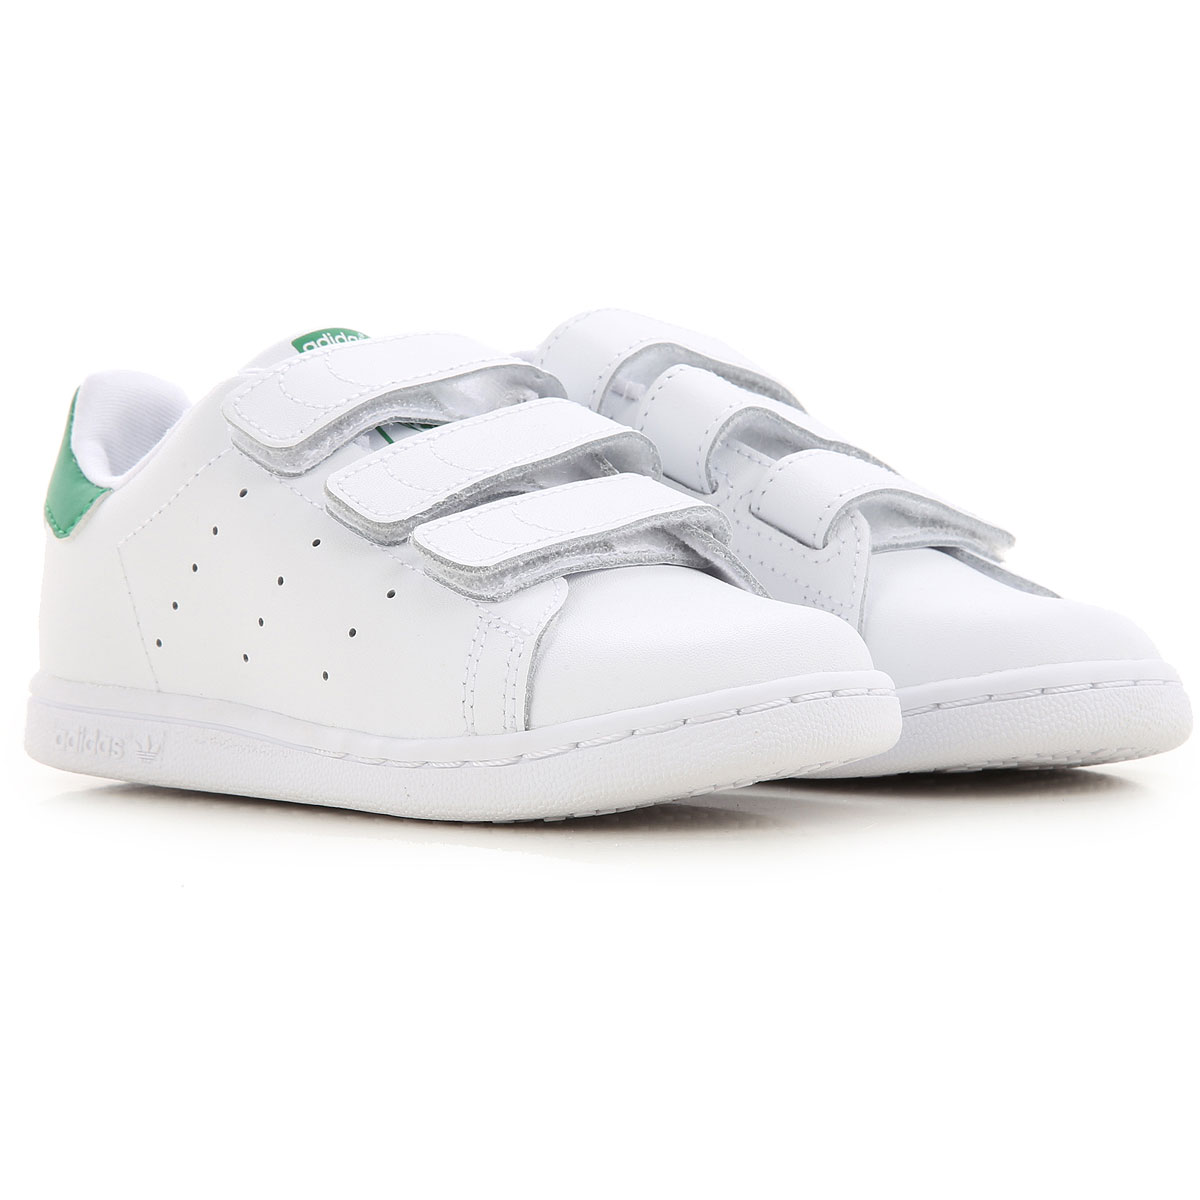 Adidas Kids Shoes for Boys On Sale, White, Leather, 2019, 22 23 26